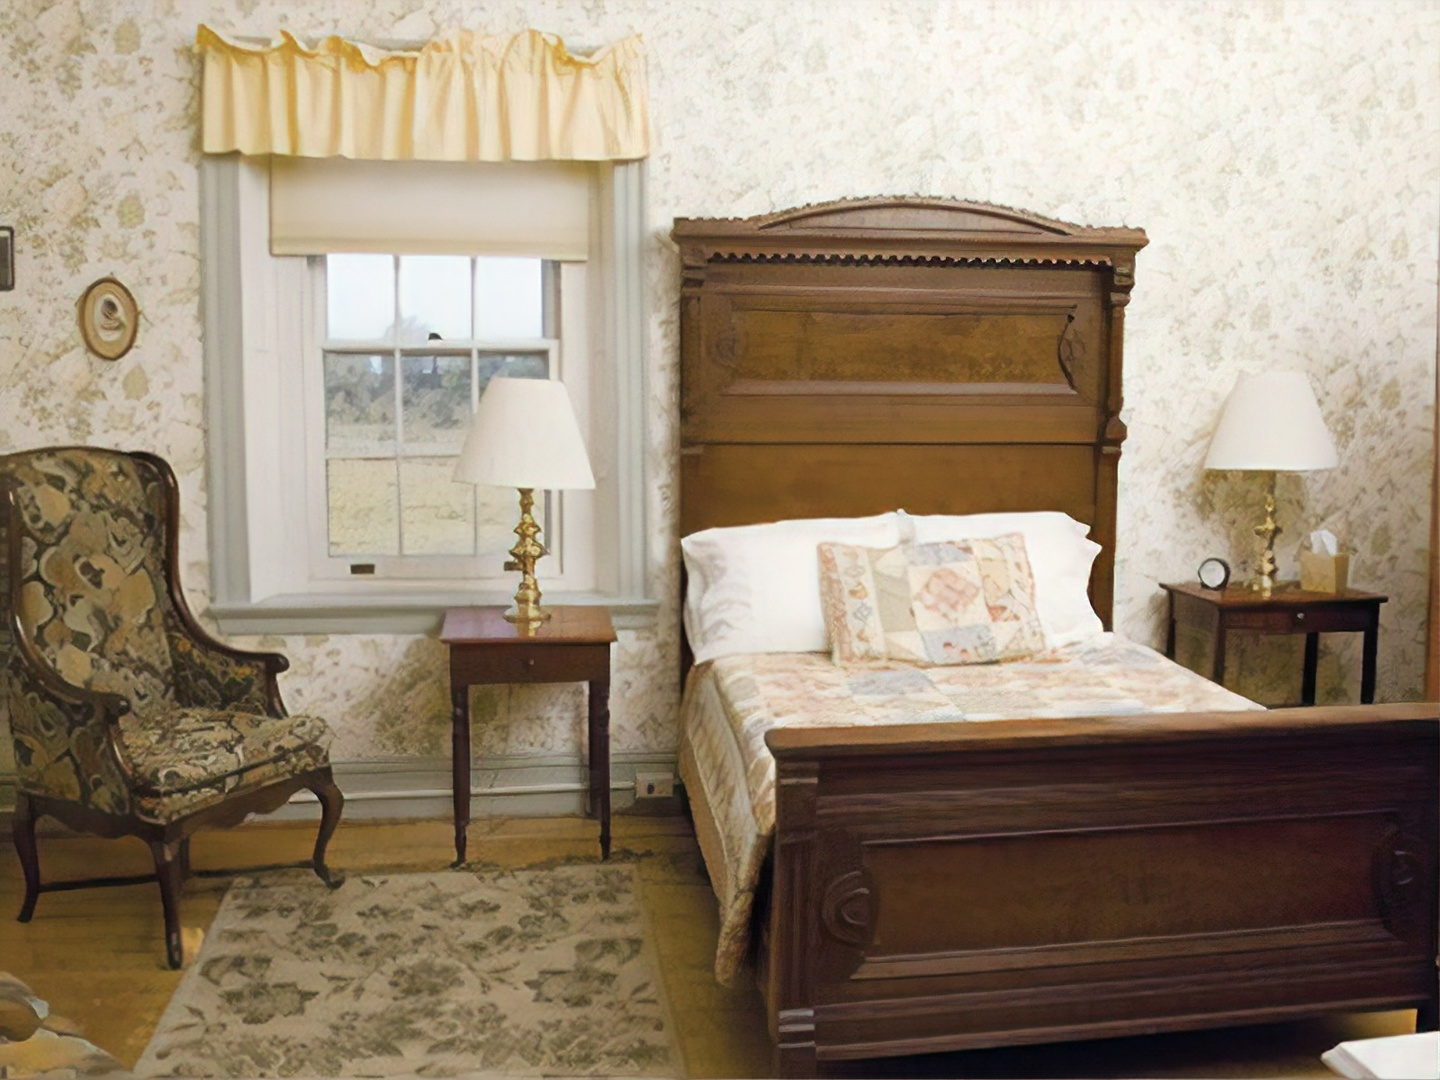 A living room filled with furniture and a fireplace at Catamount Bed & Breakfast.